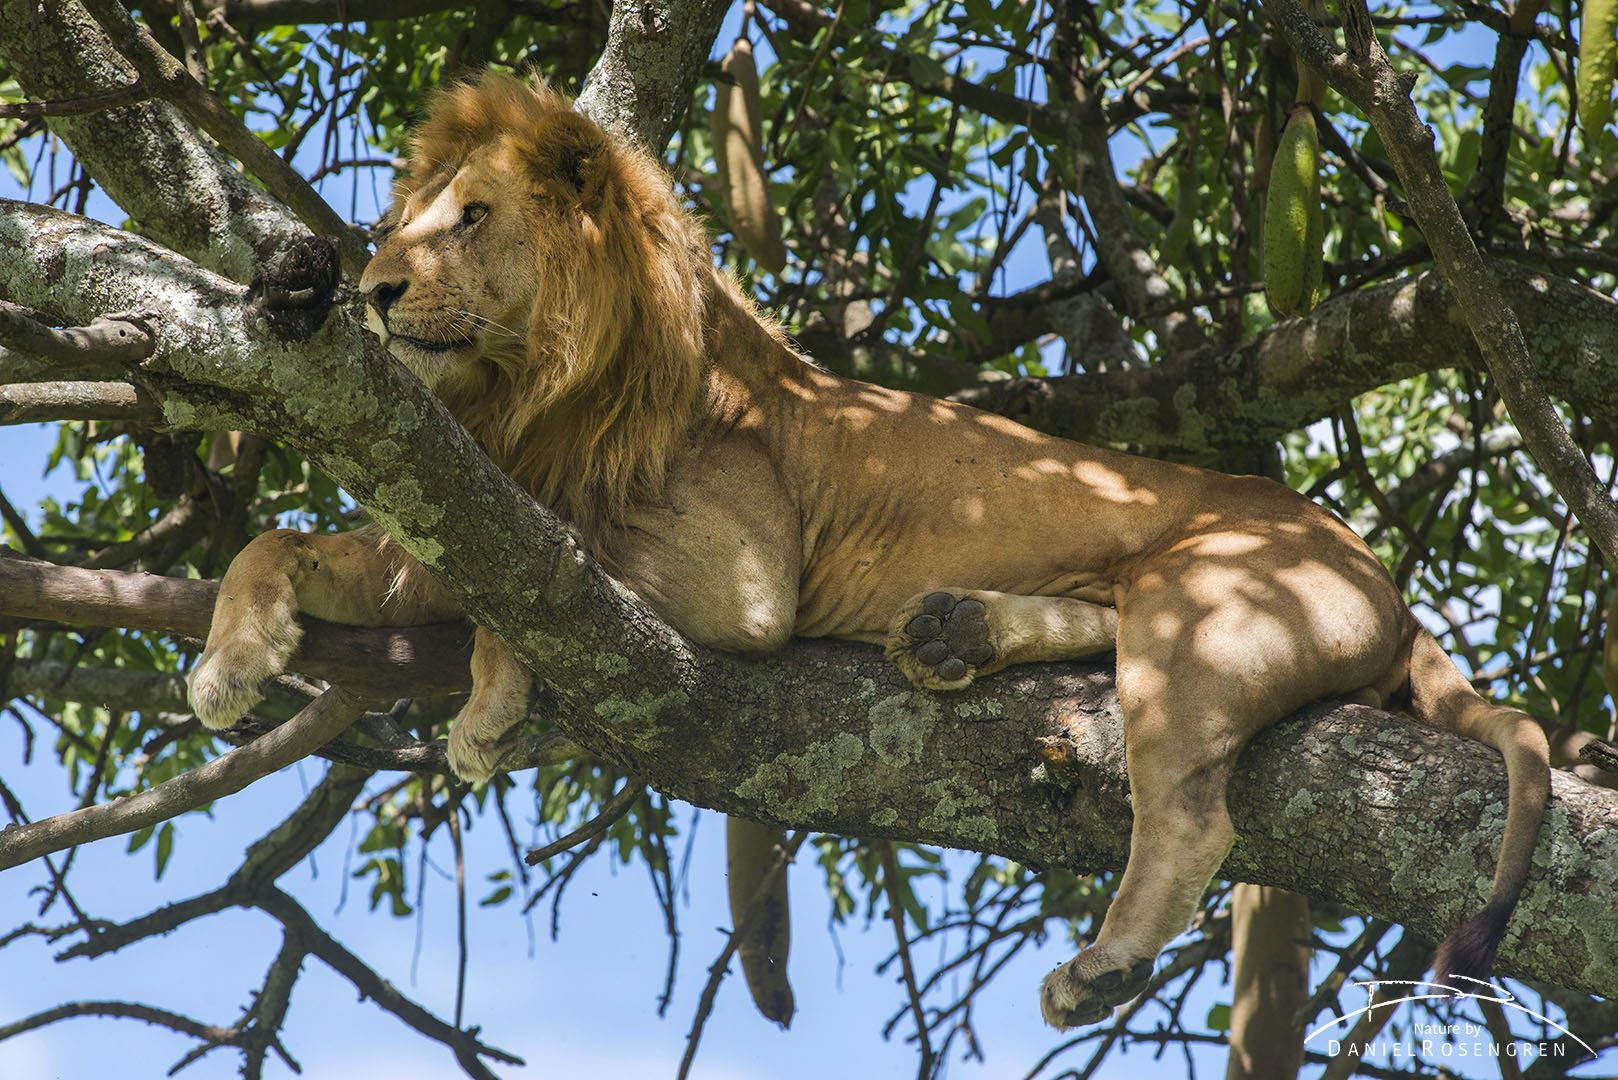 It is very rare to see an adult male high up in a tree. © Daniel Rosengren